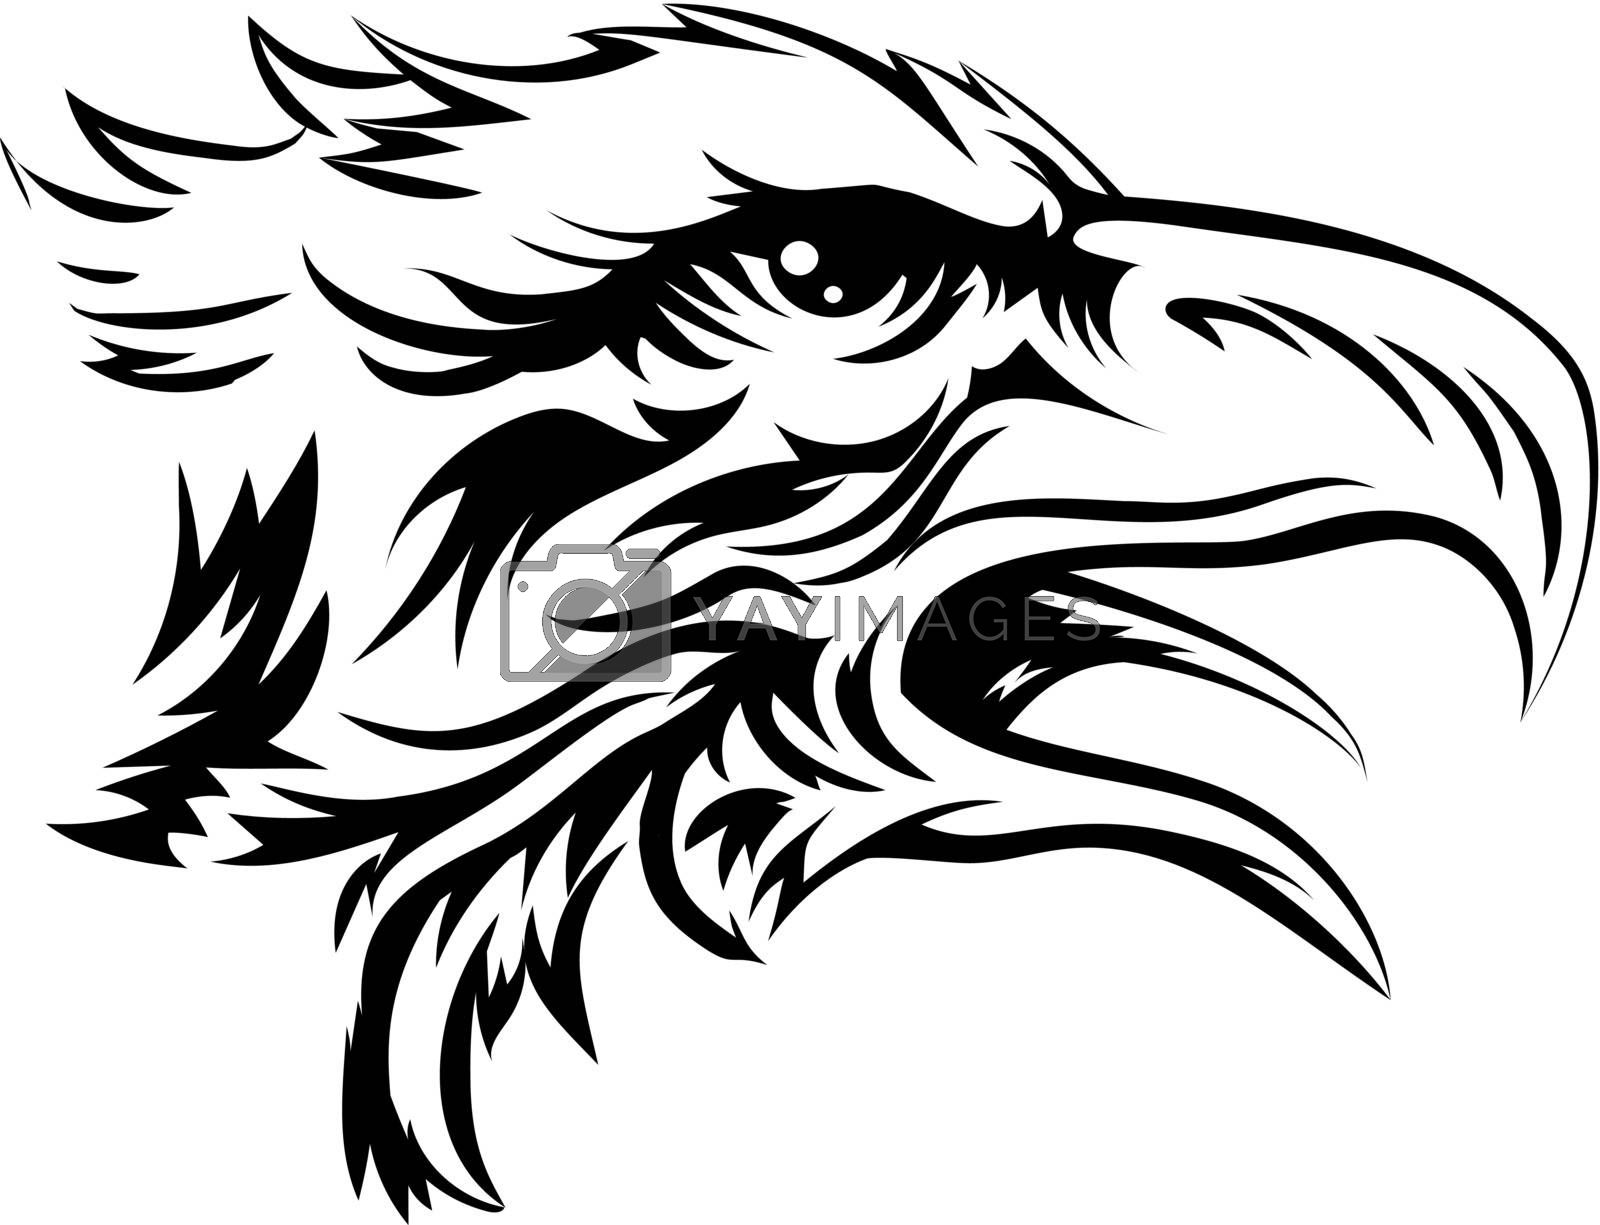 Eagle head like that of a bald eagle or other bird of prey